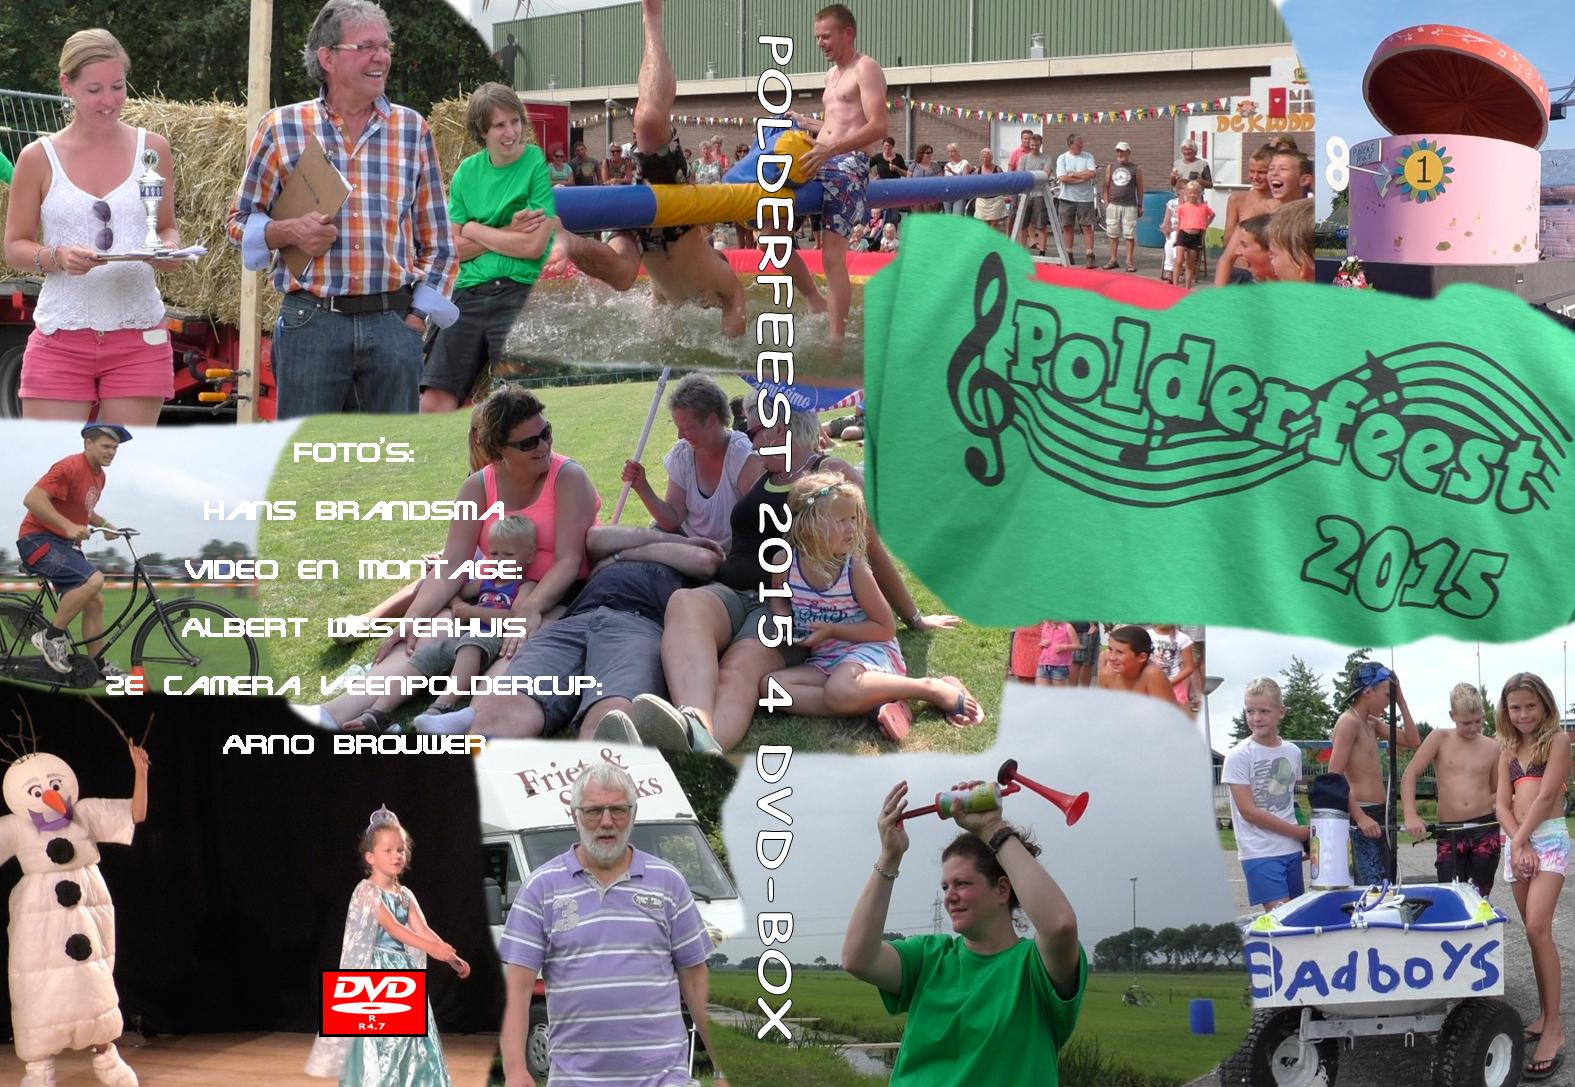 DVD Polderfeest 2015